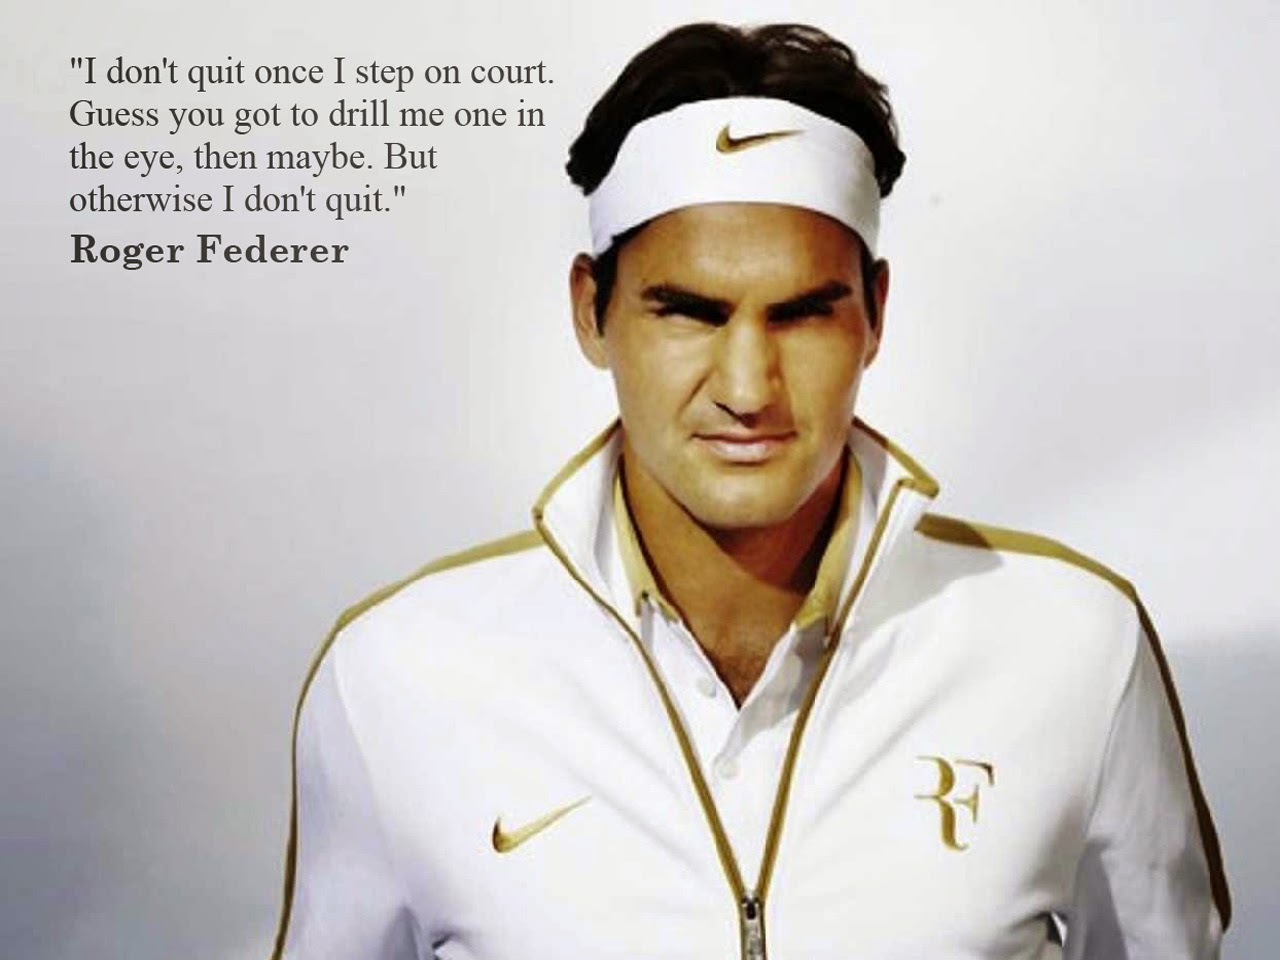 Motivational Sports Quotes From Famous Athletes